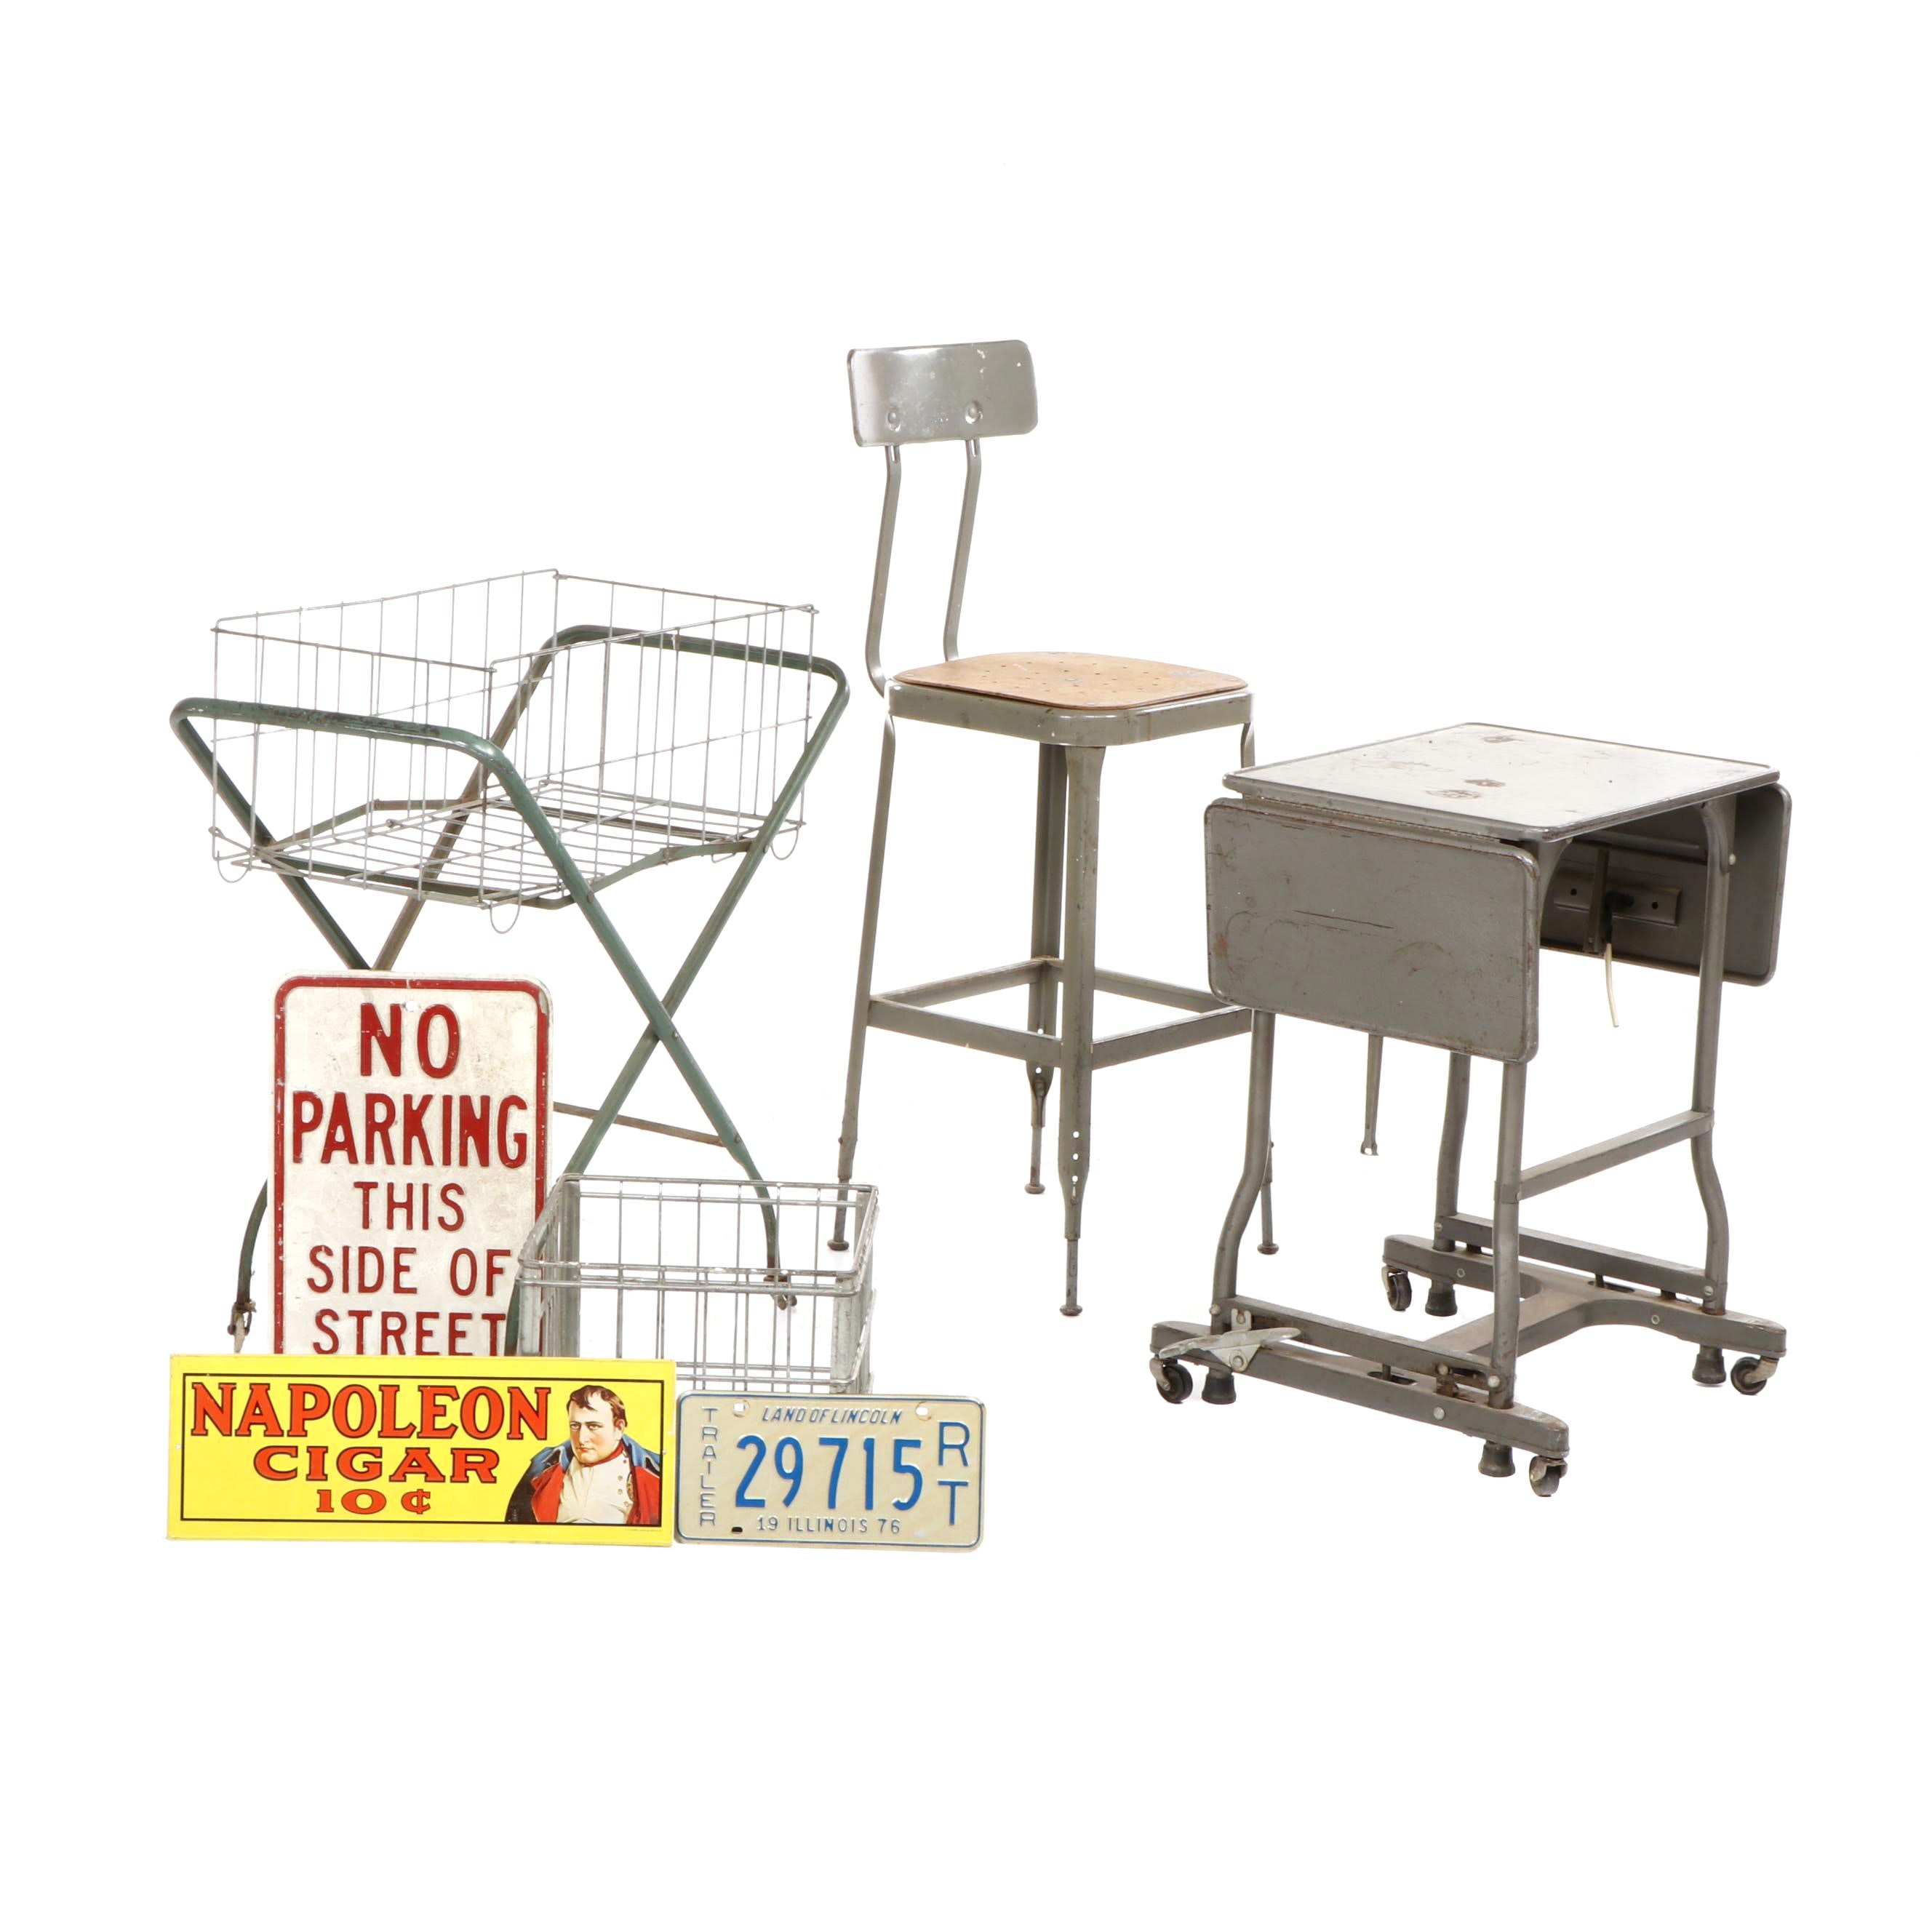 Mid Century Lyon Industrial Metal Stool with Milk Crate, Laundry Cart and More